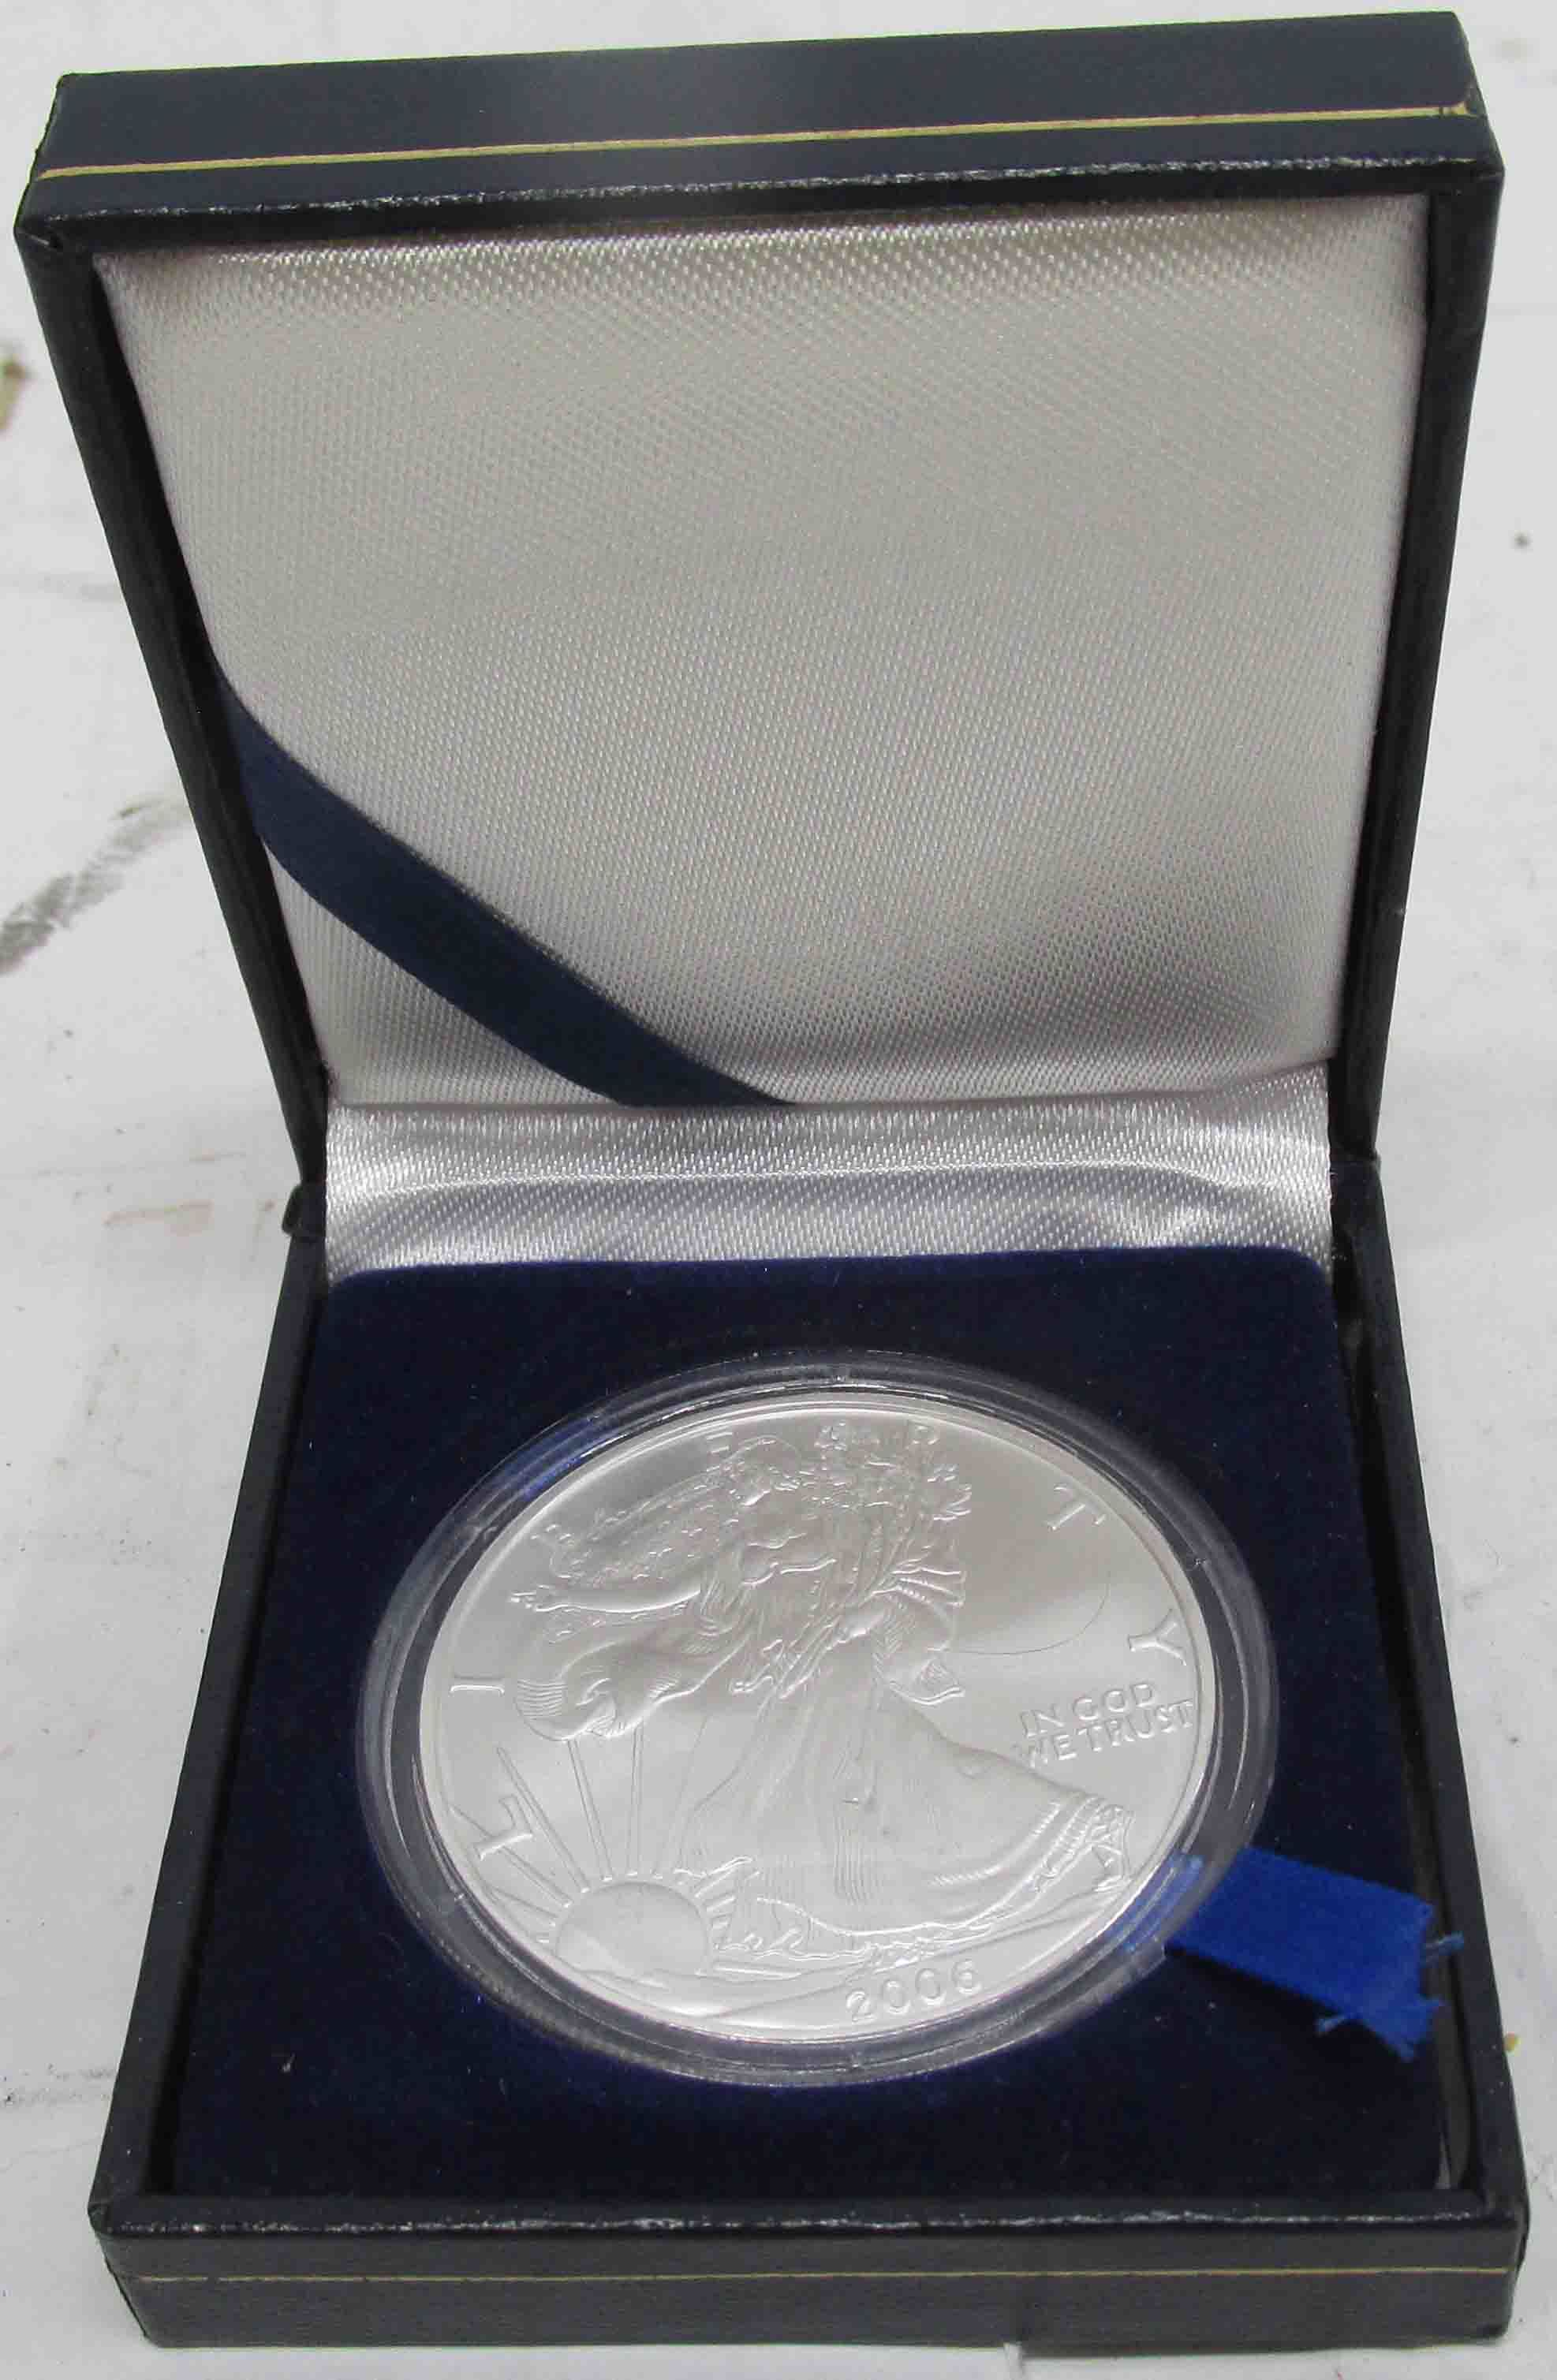 2006 1 oz Silver American Eagle Proof Coin in Display Box